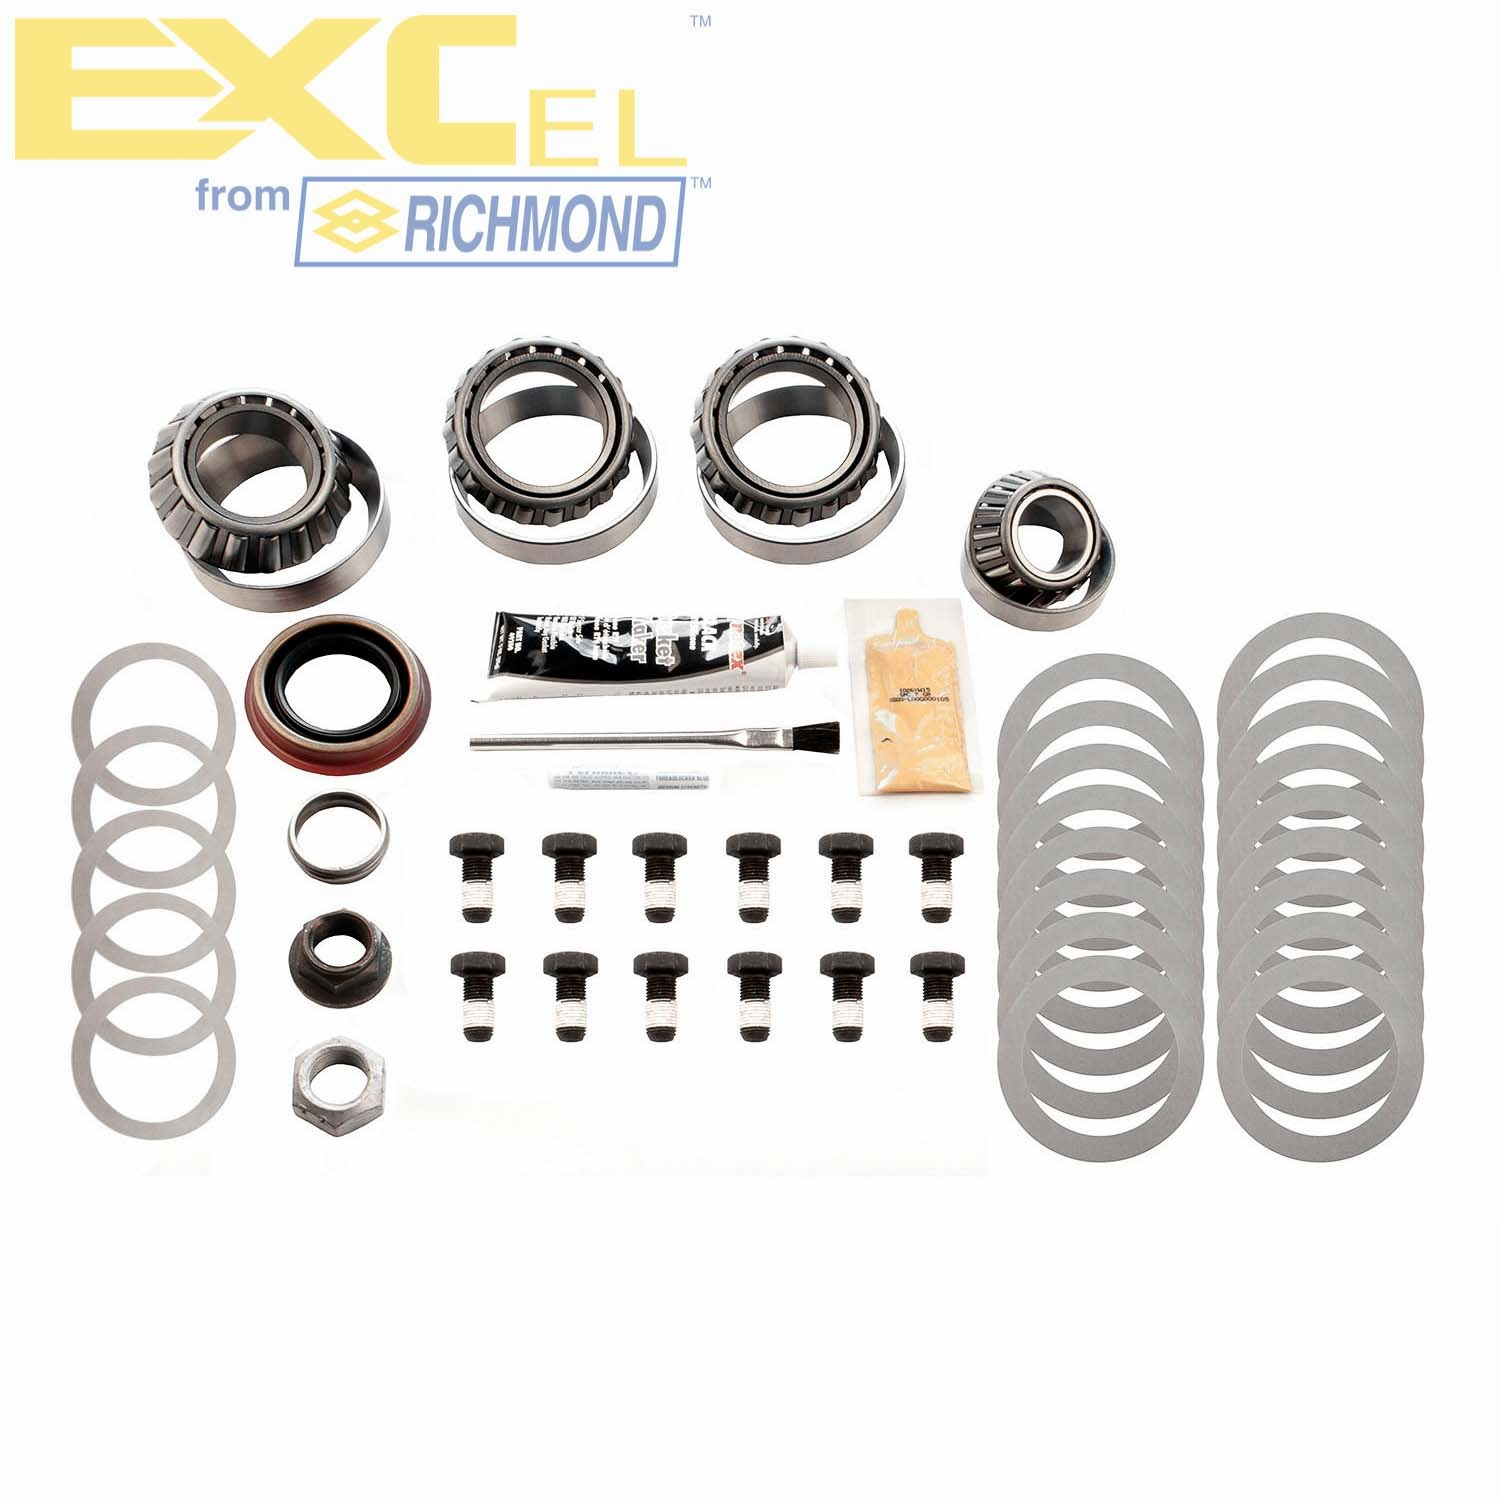 EXCEL from Richmond XL-1049-1 Differential Bearing Kit